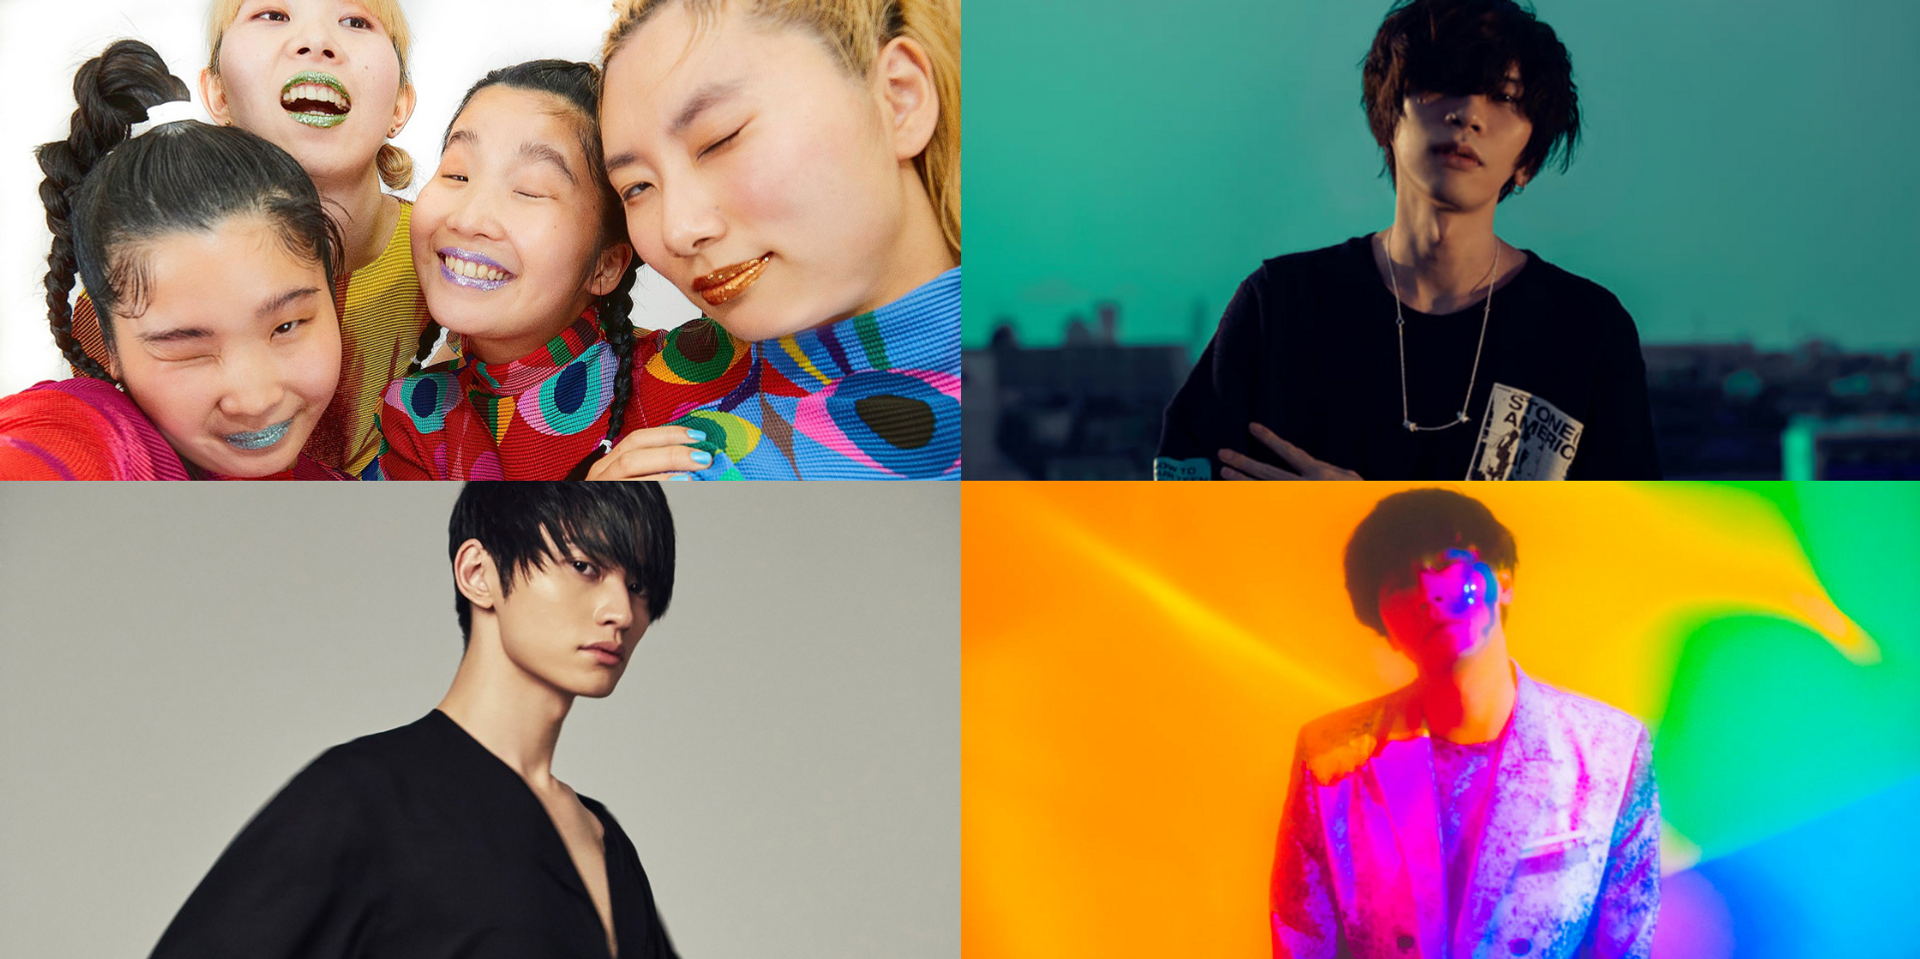 CHAI, ROTH BART BARON, Kenshi Yonezu, SKY-HI, and more nominated for Space Shower Music Awards 2021